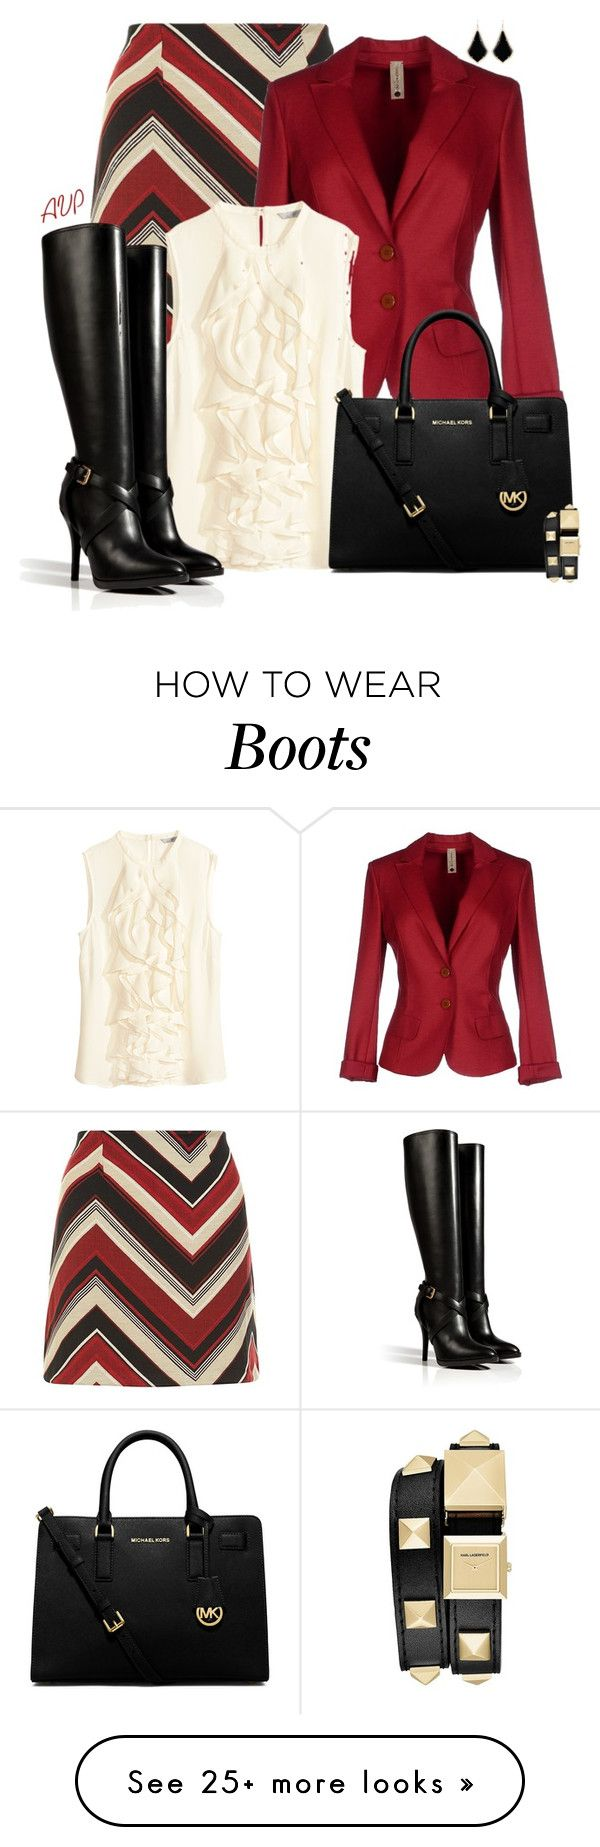 """""""Boots and an A-Line"""" by amy-phelps on Polyvore featuring Kendra Scott, Pianurastudio, H&M, MICHAEL Michael Kors, Karl Lagerfeld and Ralph Lauren Collection"""